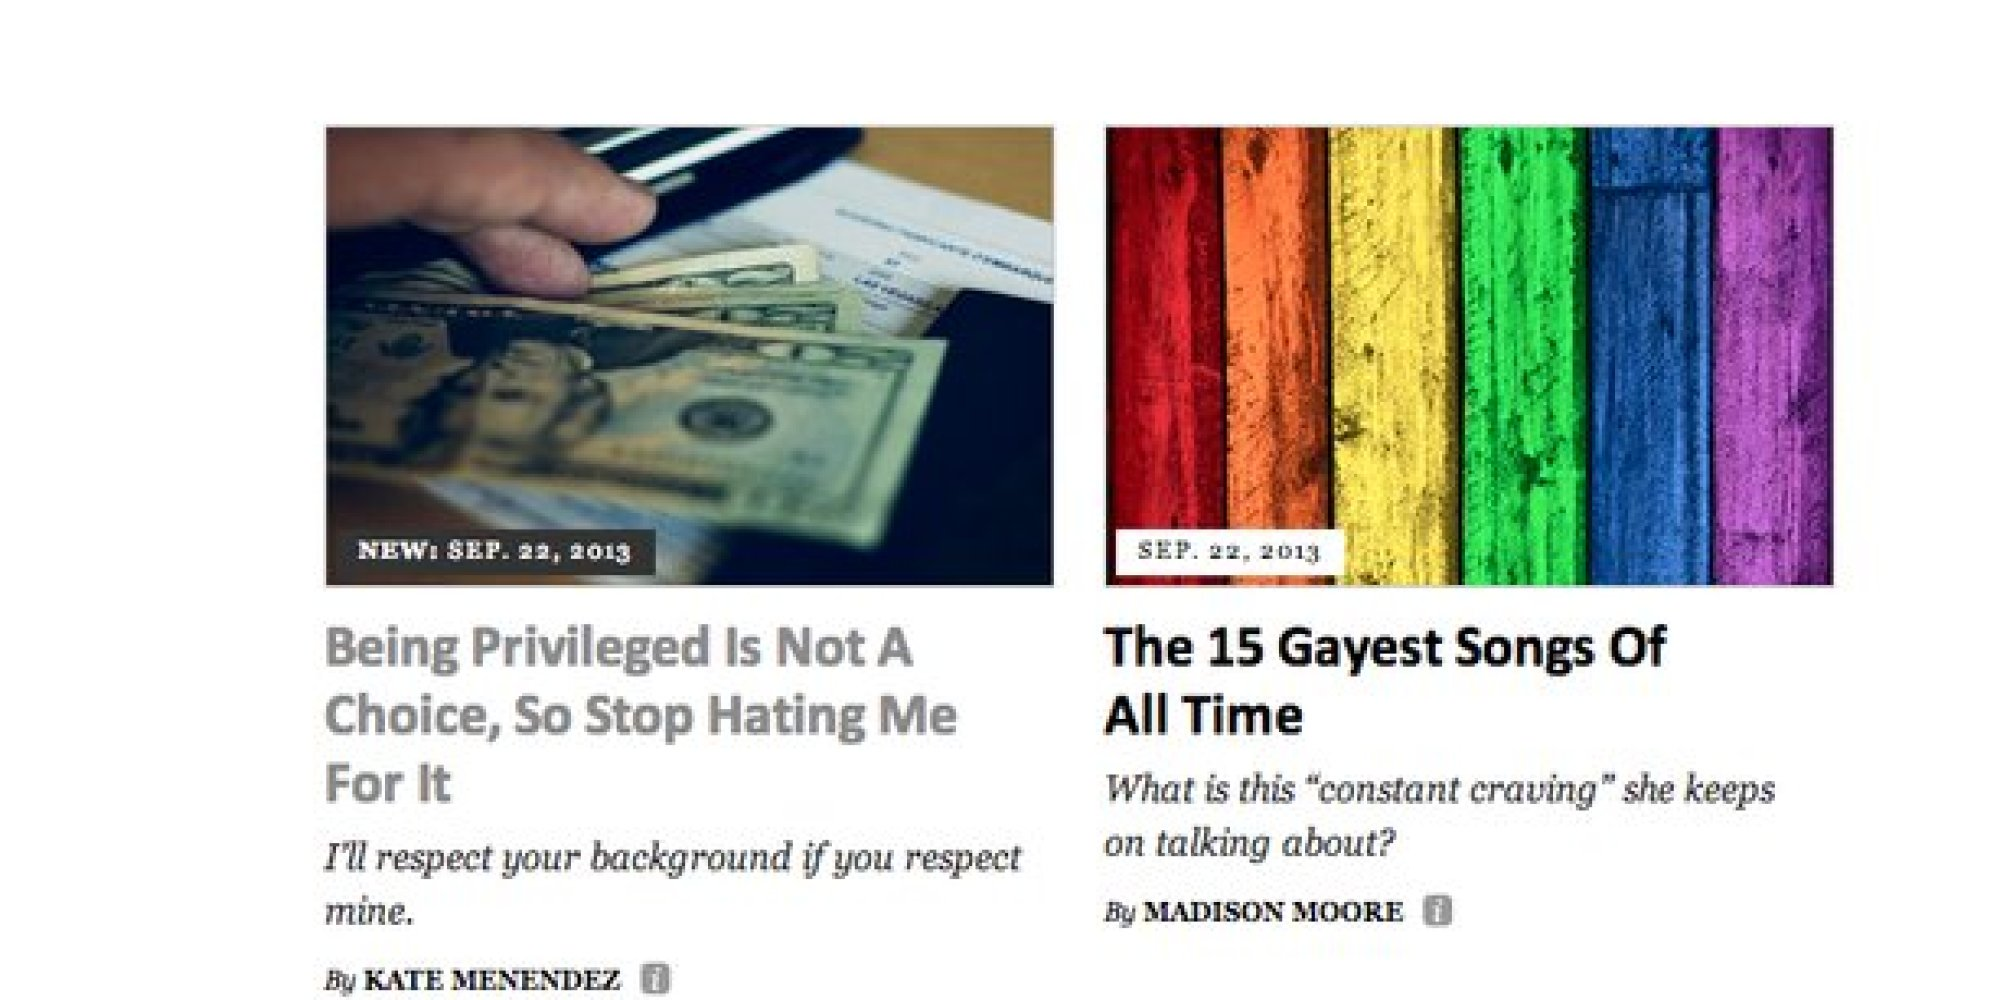 Can You Tell The Difference Between Thought Catalog And The Onion?   Huffpost